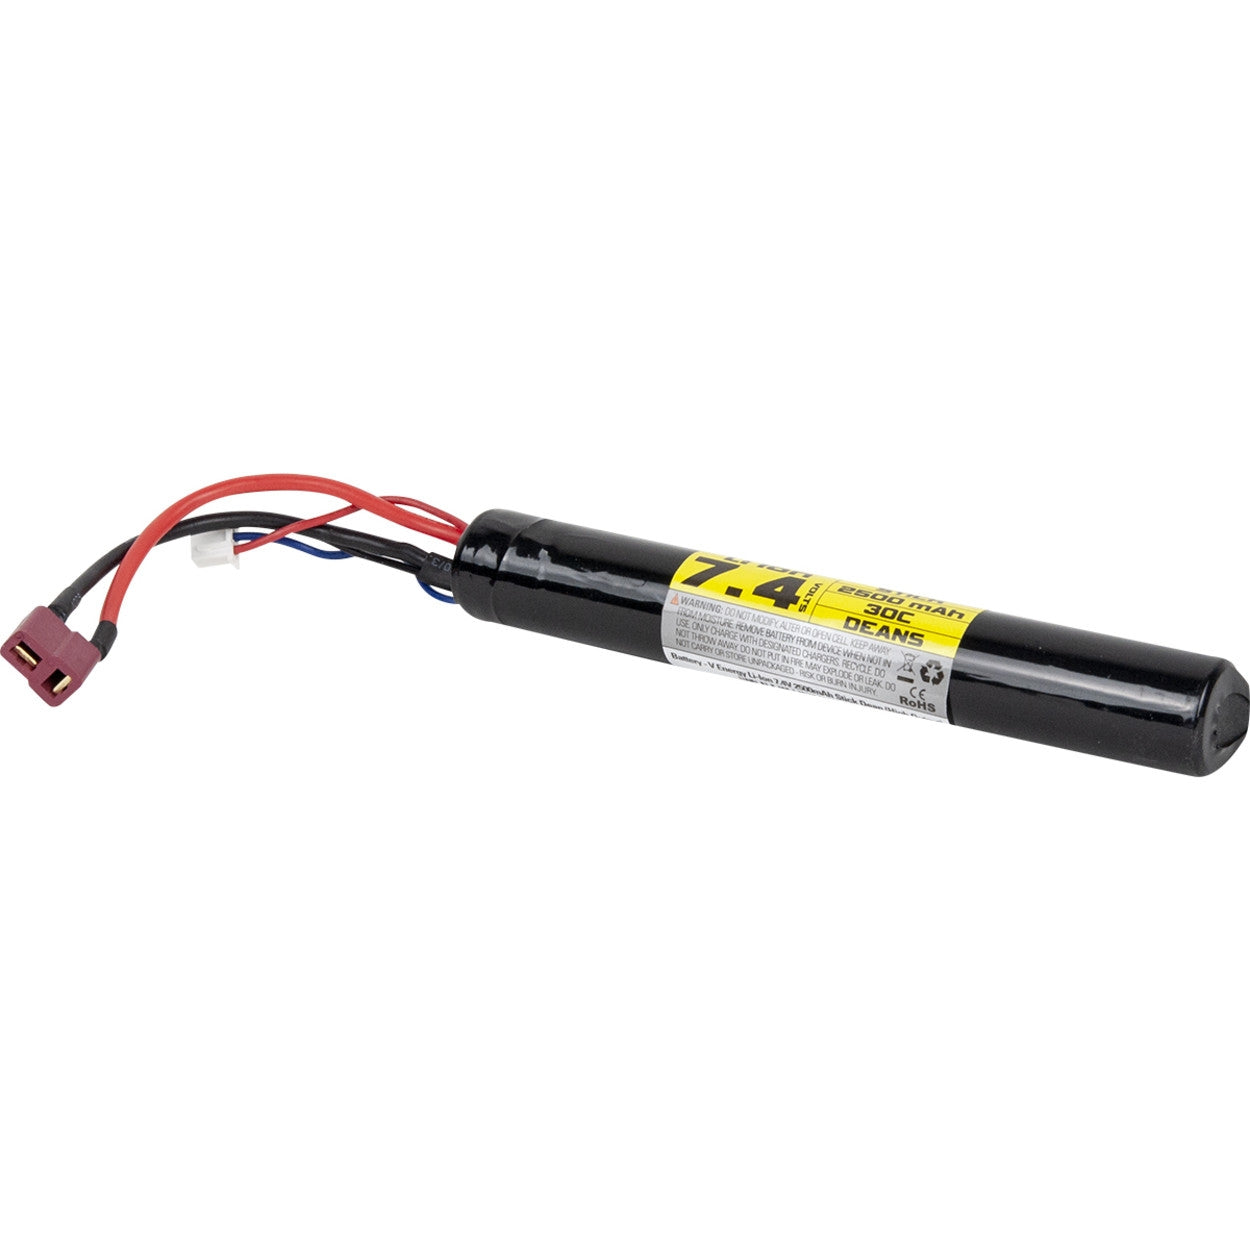 Valken Energy Li-Ion 7.4v 2500mAh Stick (High Output)